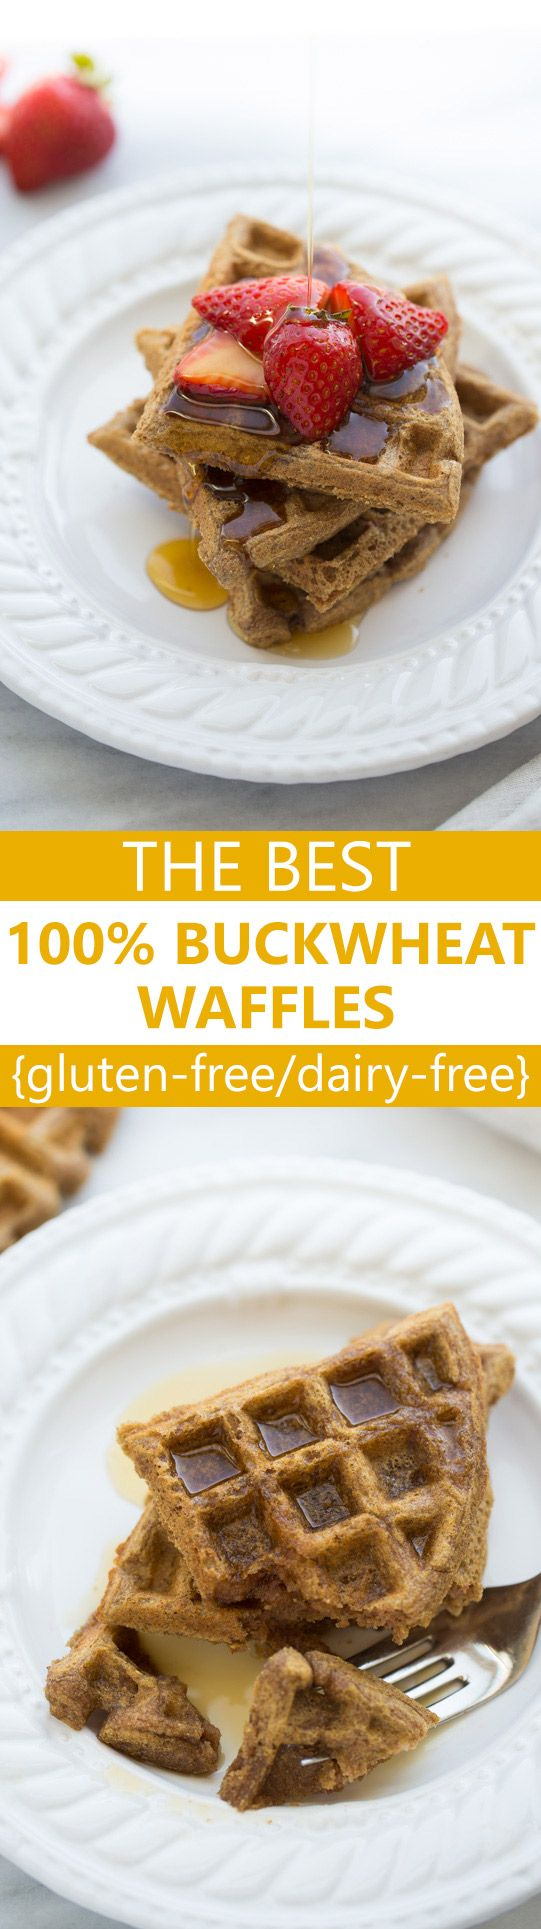 The Best 100% Buckwheat Waffles! Light, crispy and delicious - but packed with protein, fiber and nutrients! {Gluten & Dairy-Free}